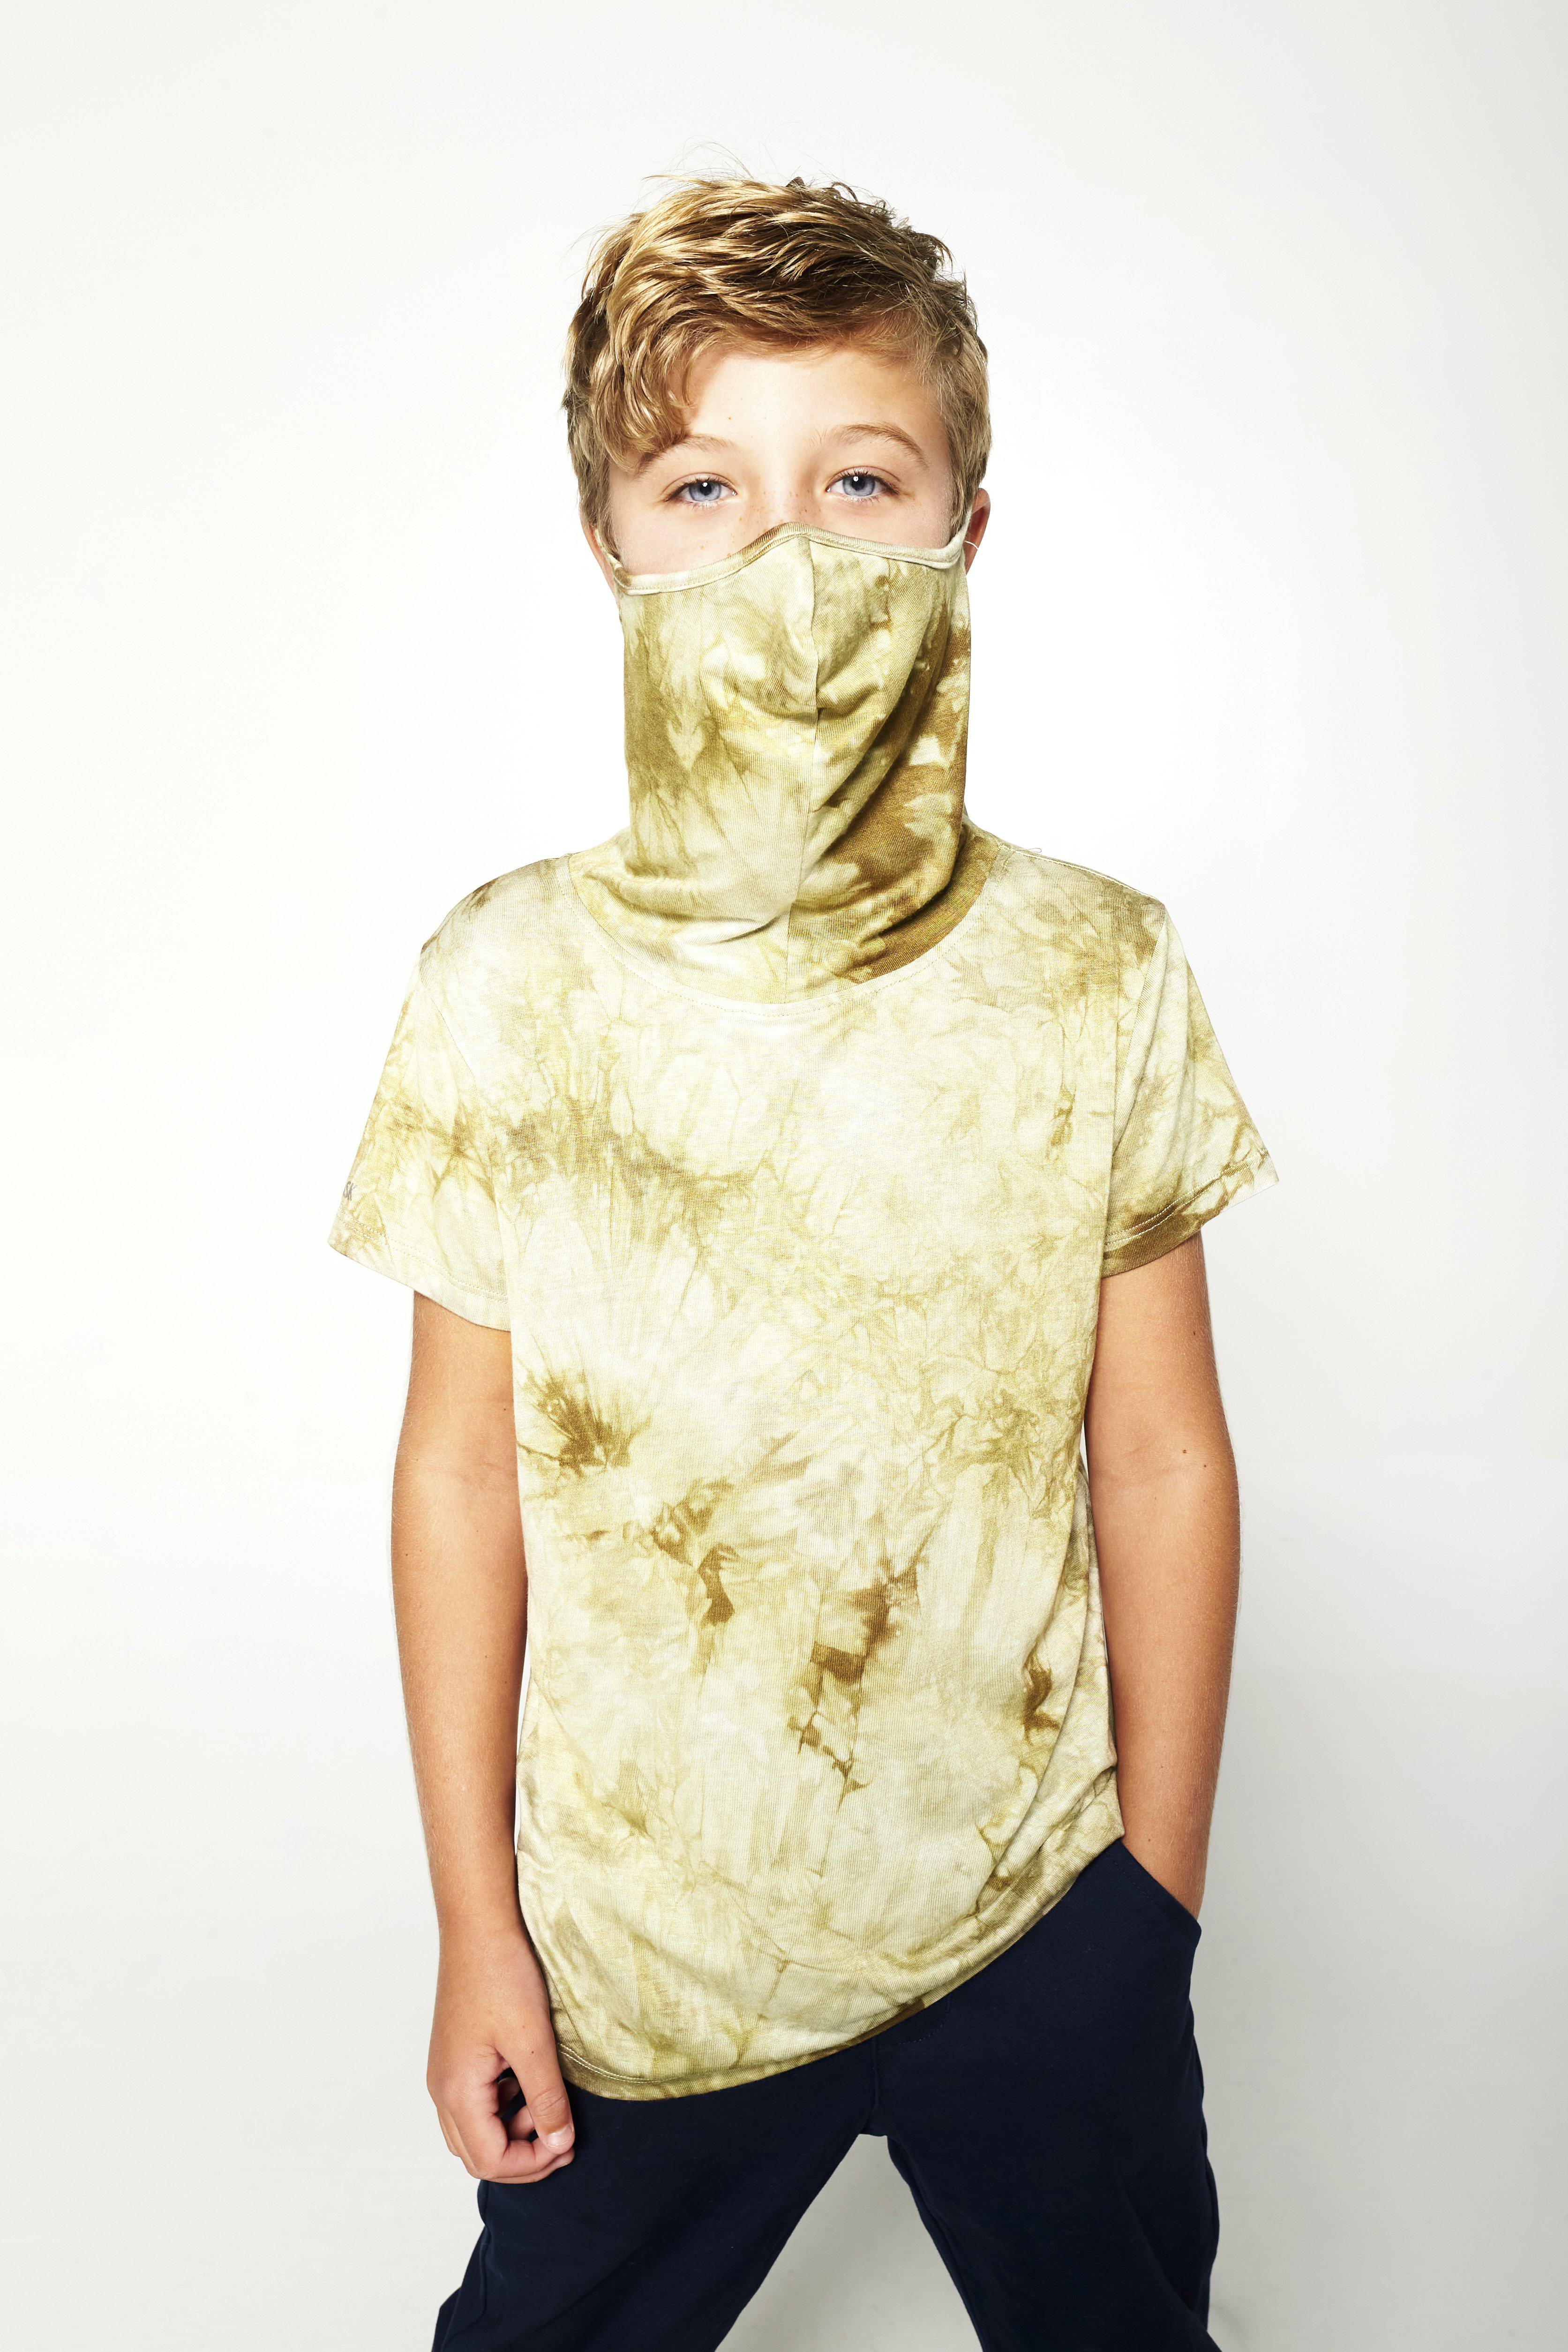 Kids Short Sleeve Army Green Tie-dye Shmask™ Earloop Face Mask for Kids and Adults